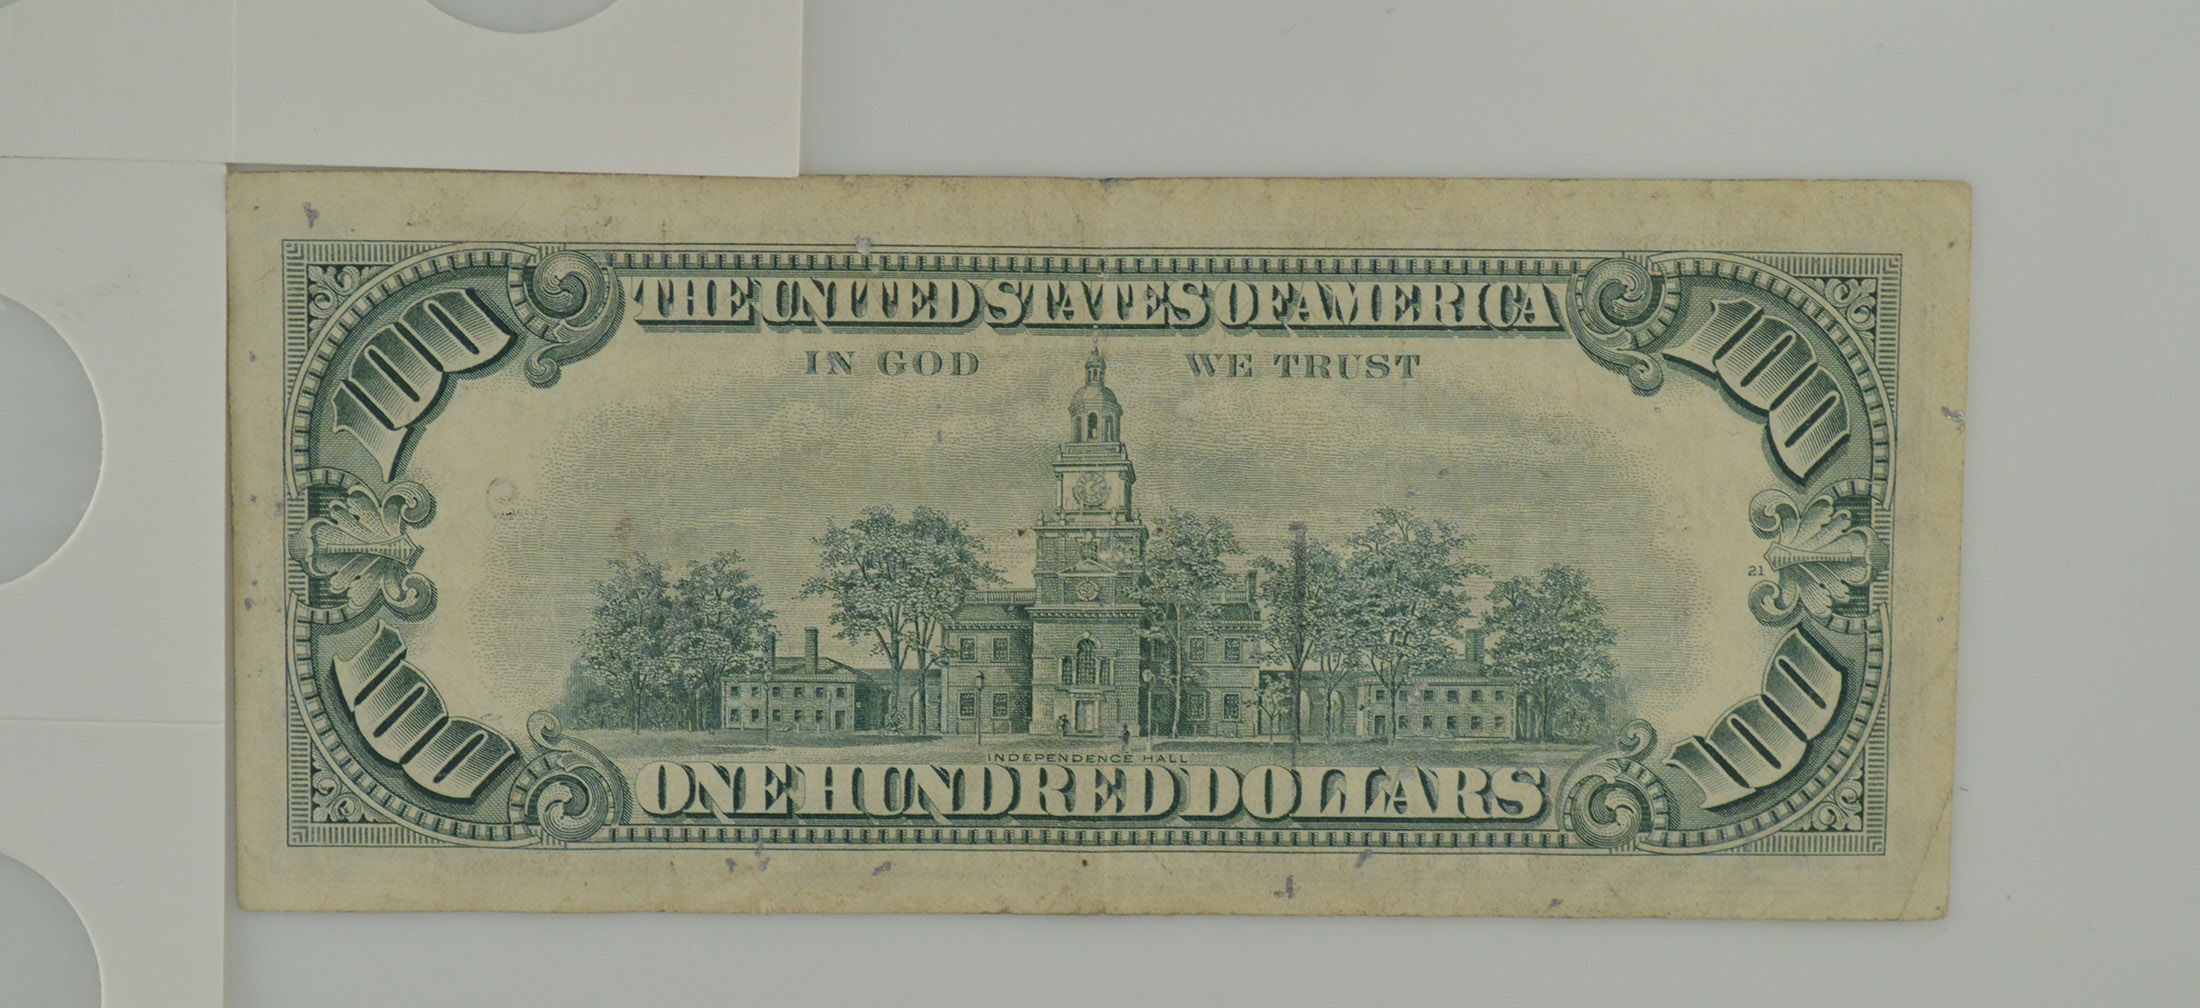 Series 1977 Star $100 Dollars Federal Reserve Note | Property Room